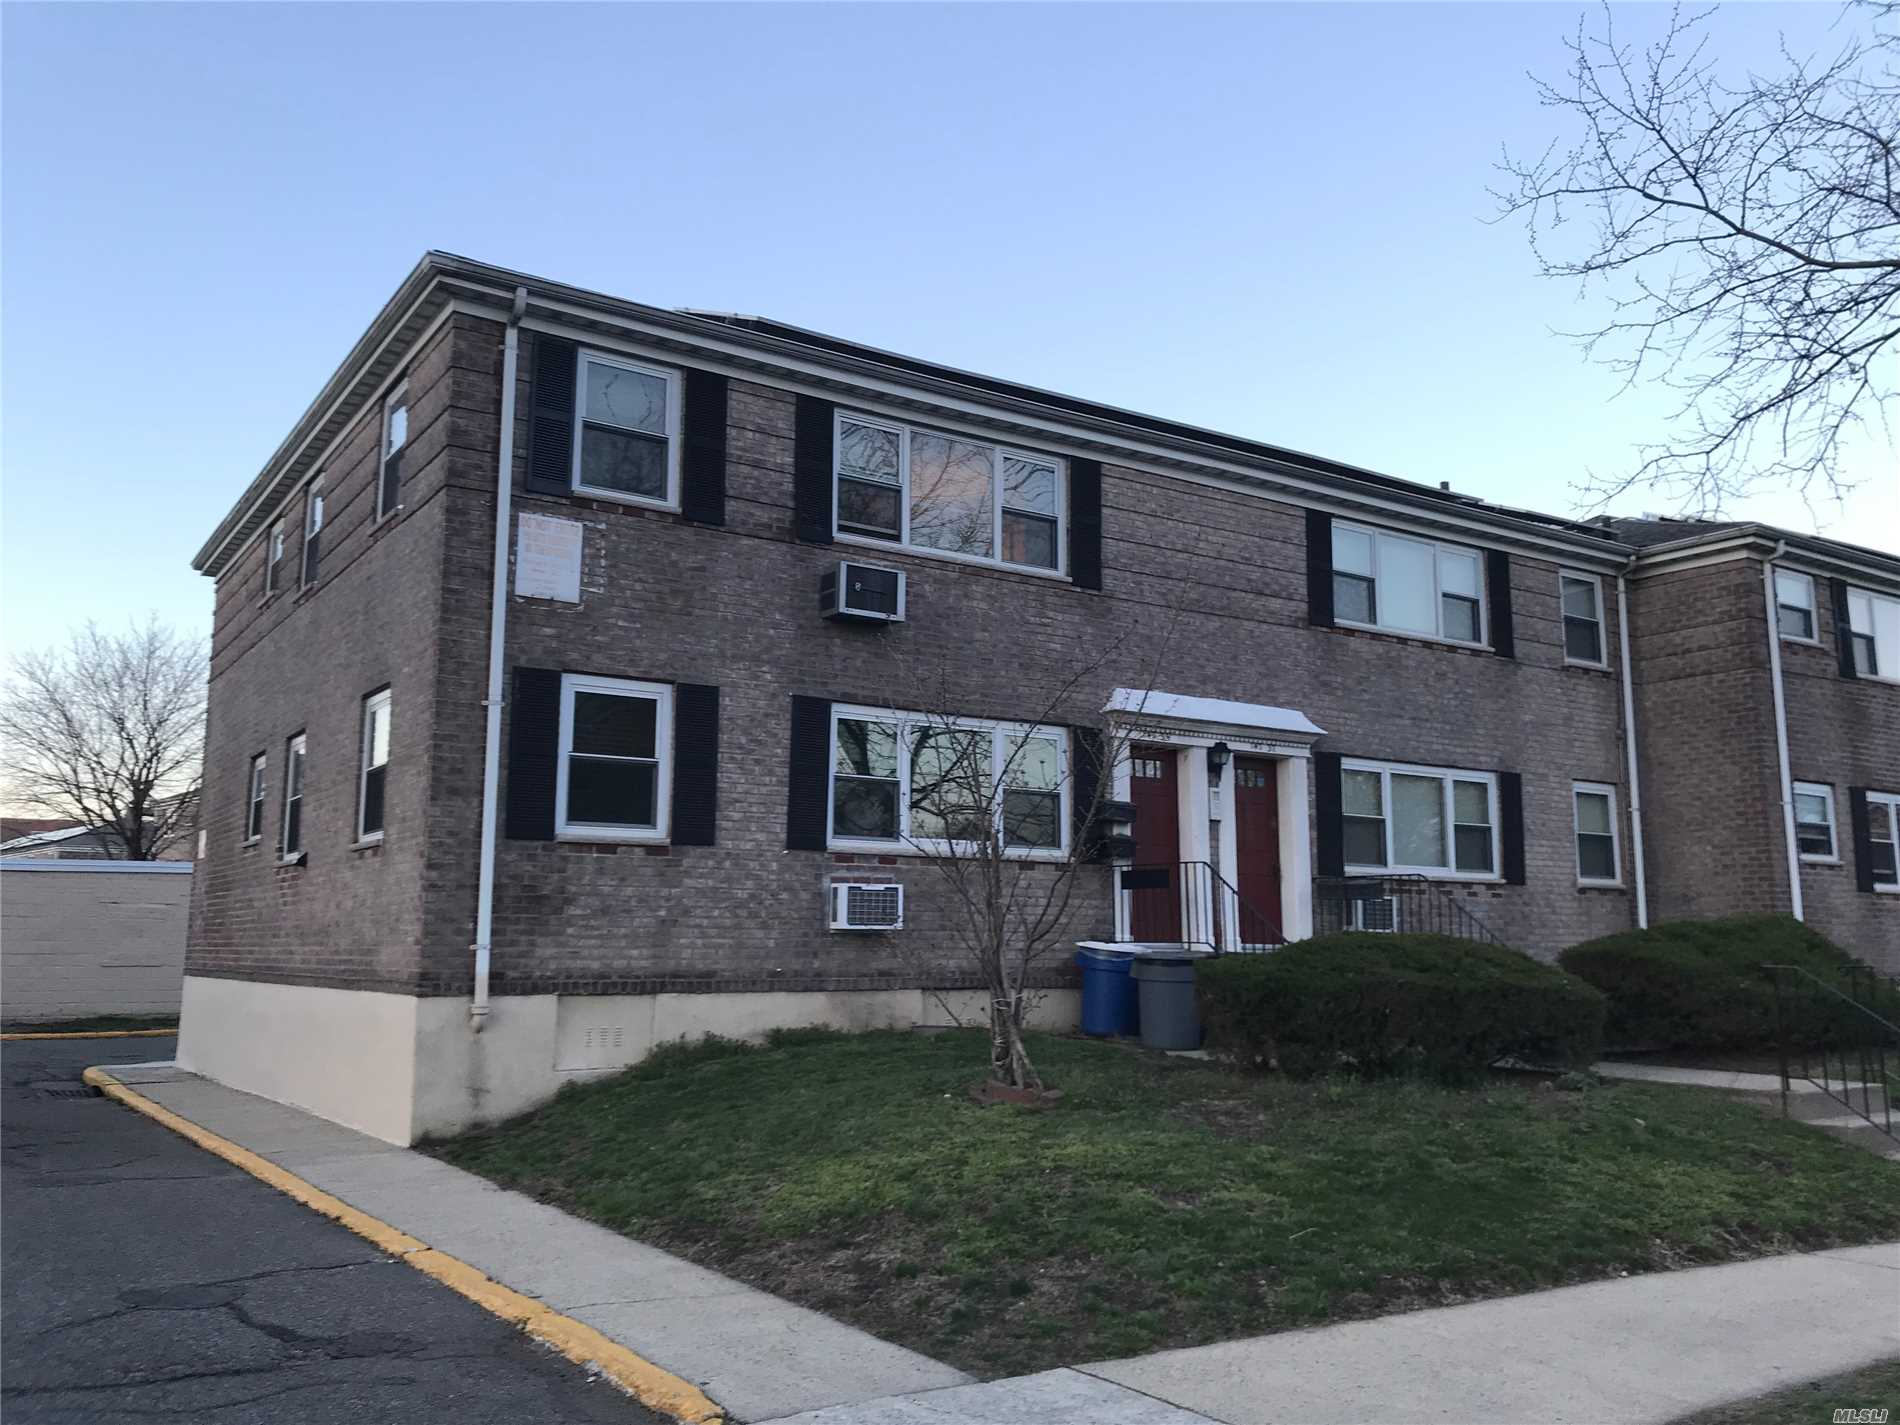 Sale may be subject to term & conditions of an offering plan. southern exposure, sunny bright corner unit on 1st floor, large living room dining area, updated kitchen with granite counter top, 1 full bath, 2 decent size beds, 1 block to Main St. walk to Queens College, local and express buses(QM4/44, Q64 to E/F/M/R trains, Q40/Q20A/Q18, onvenient to Downtown Flushing, Q44, QM4-express bus to Manhattan), near shops, NO FLIP TAX! laundry room available on premises, resident parking available, garage via wai